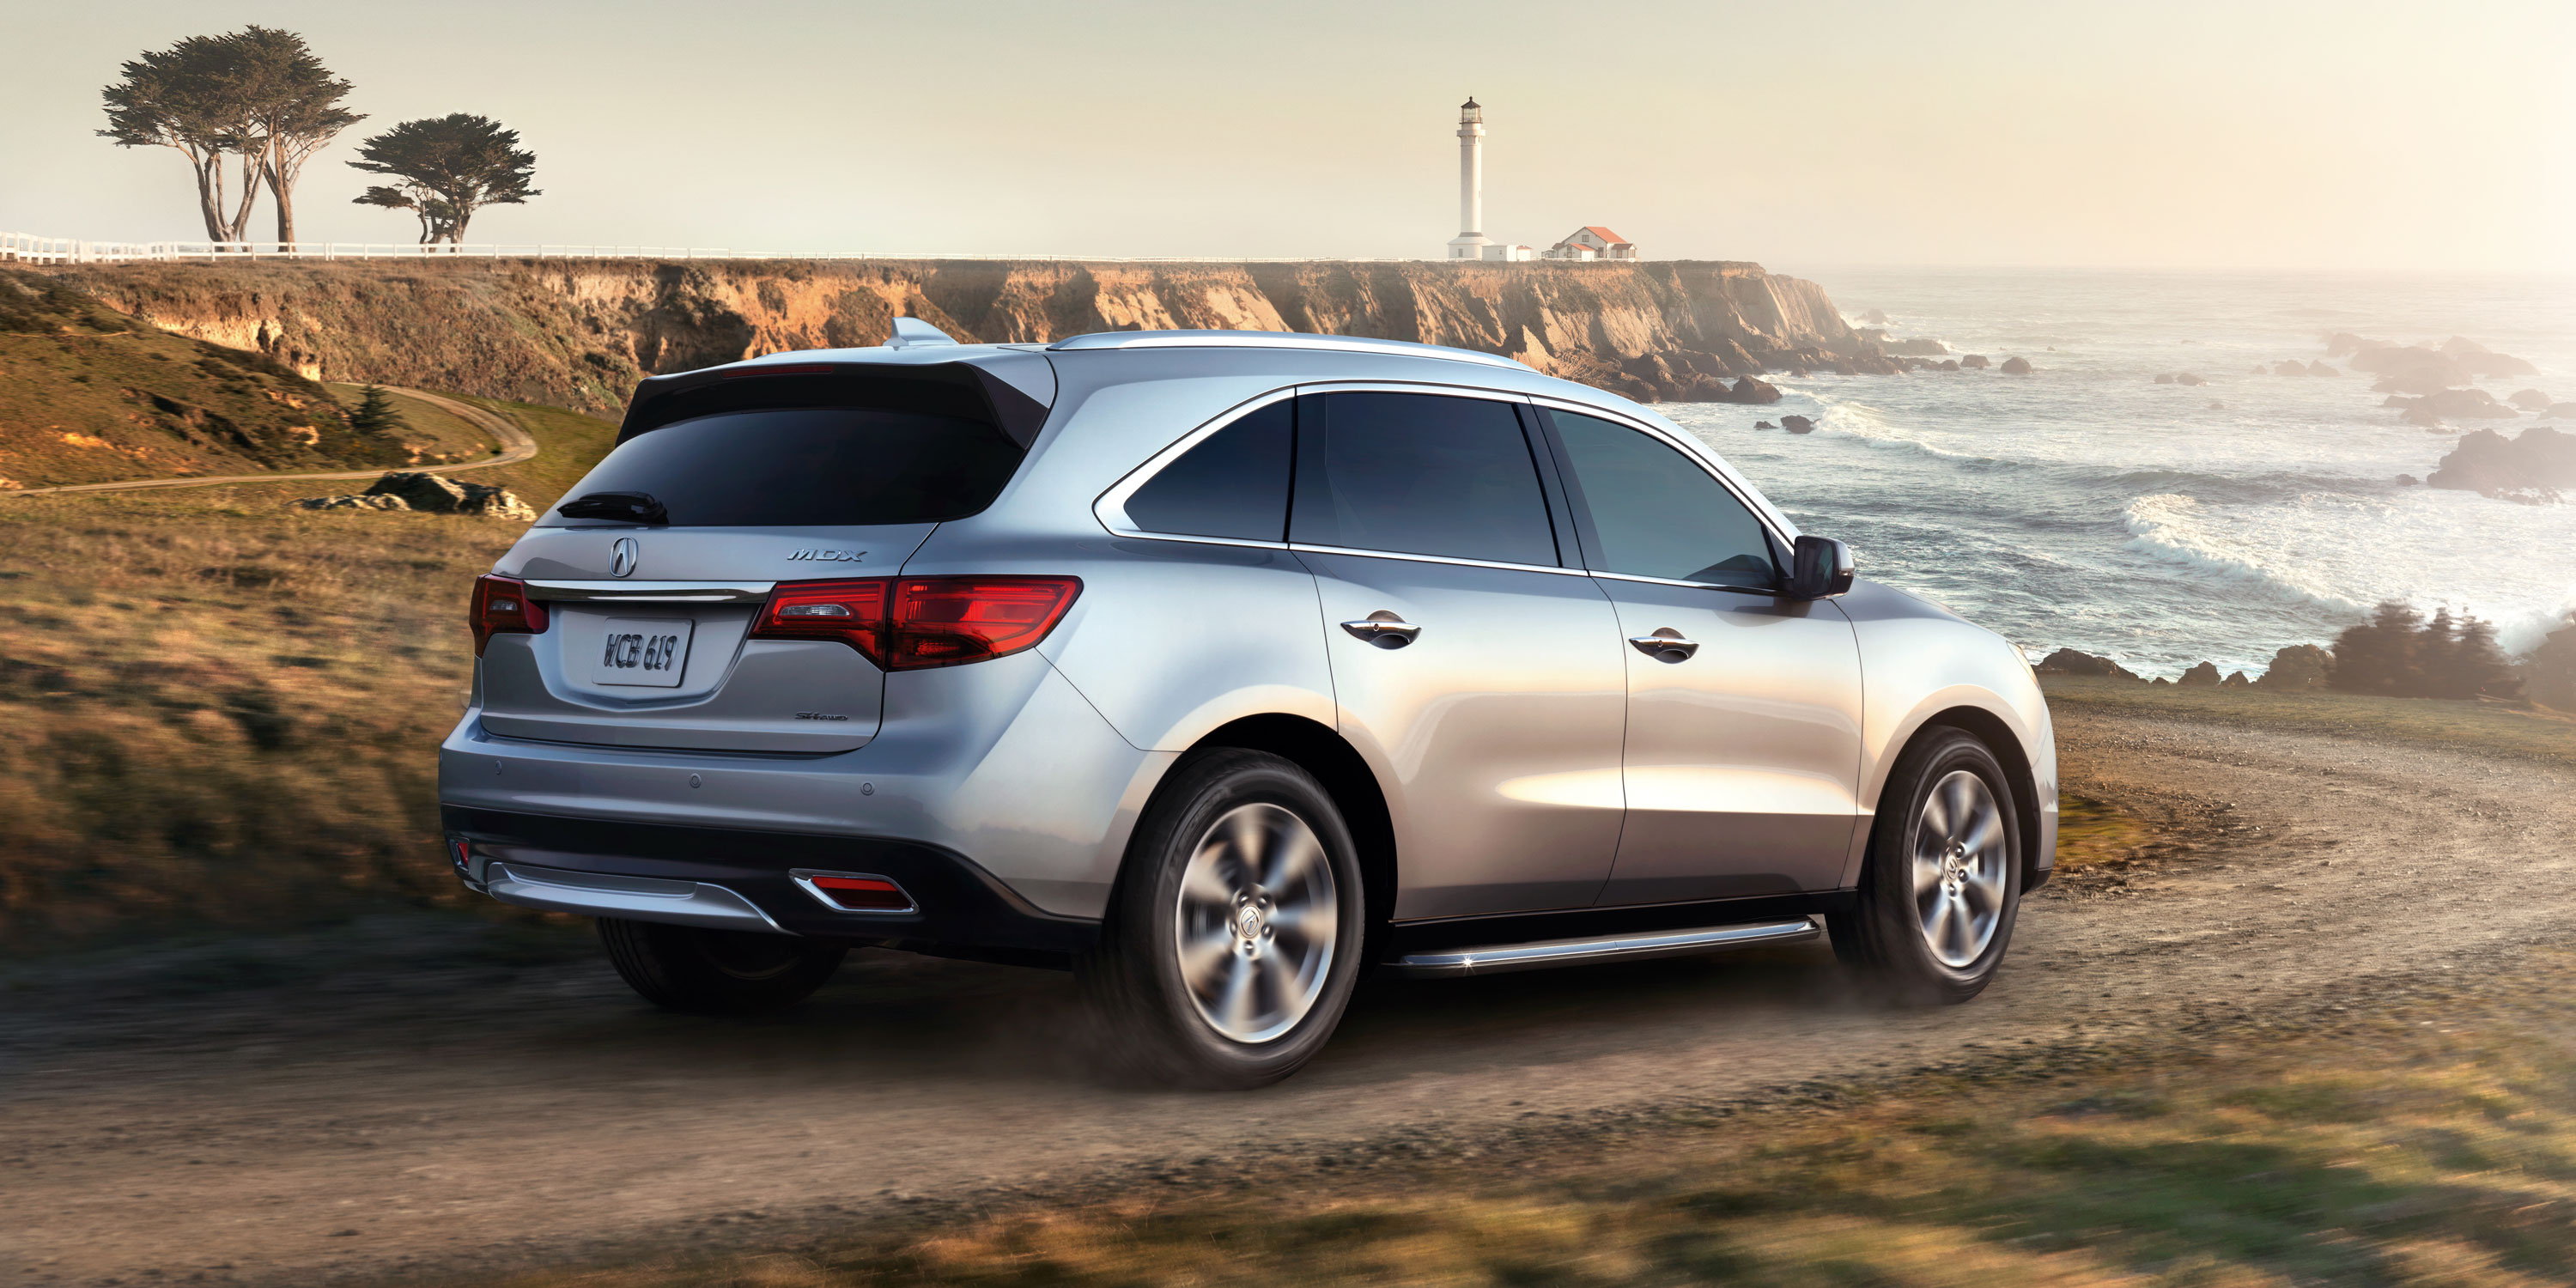 2014 Acura MDX... coming soon!